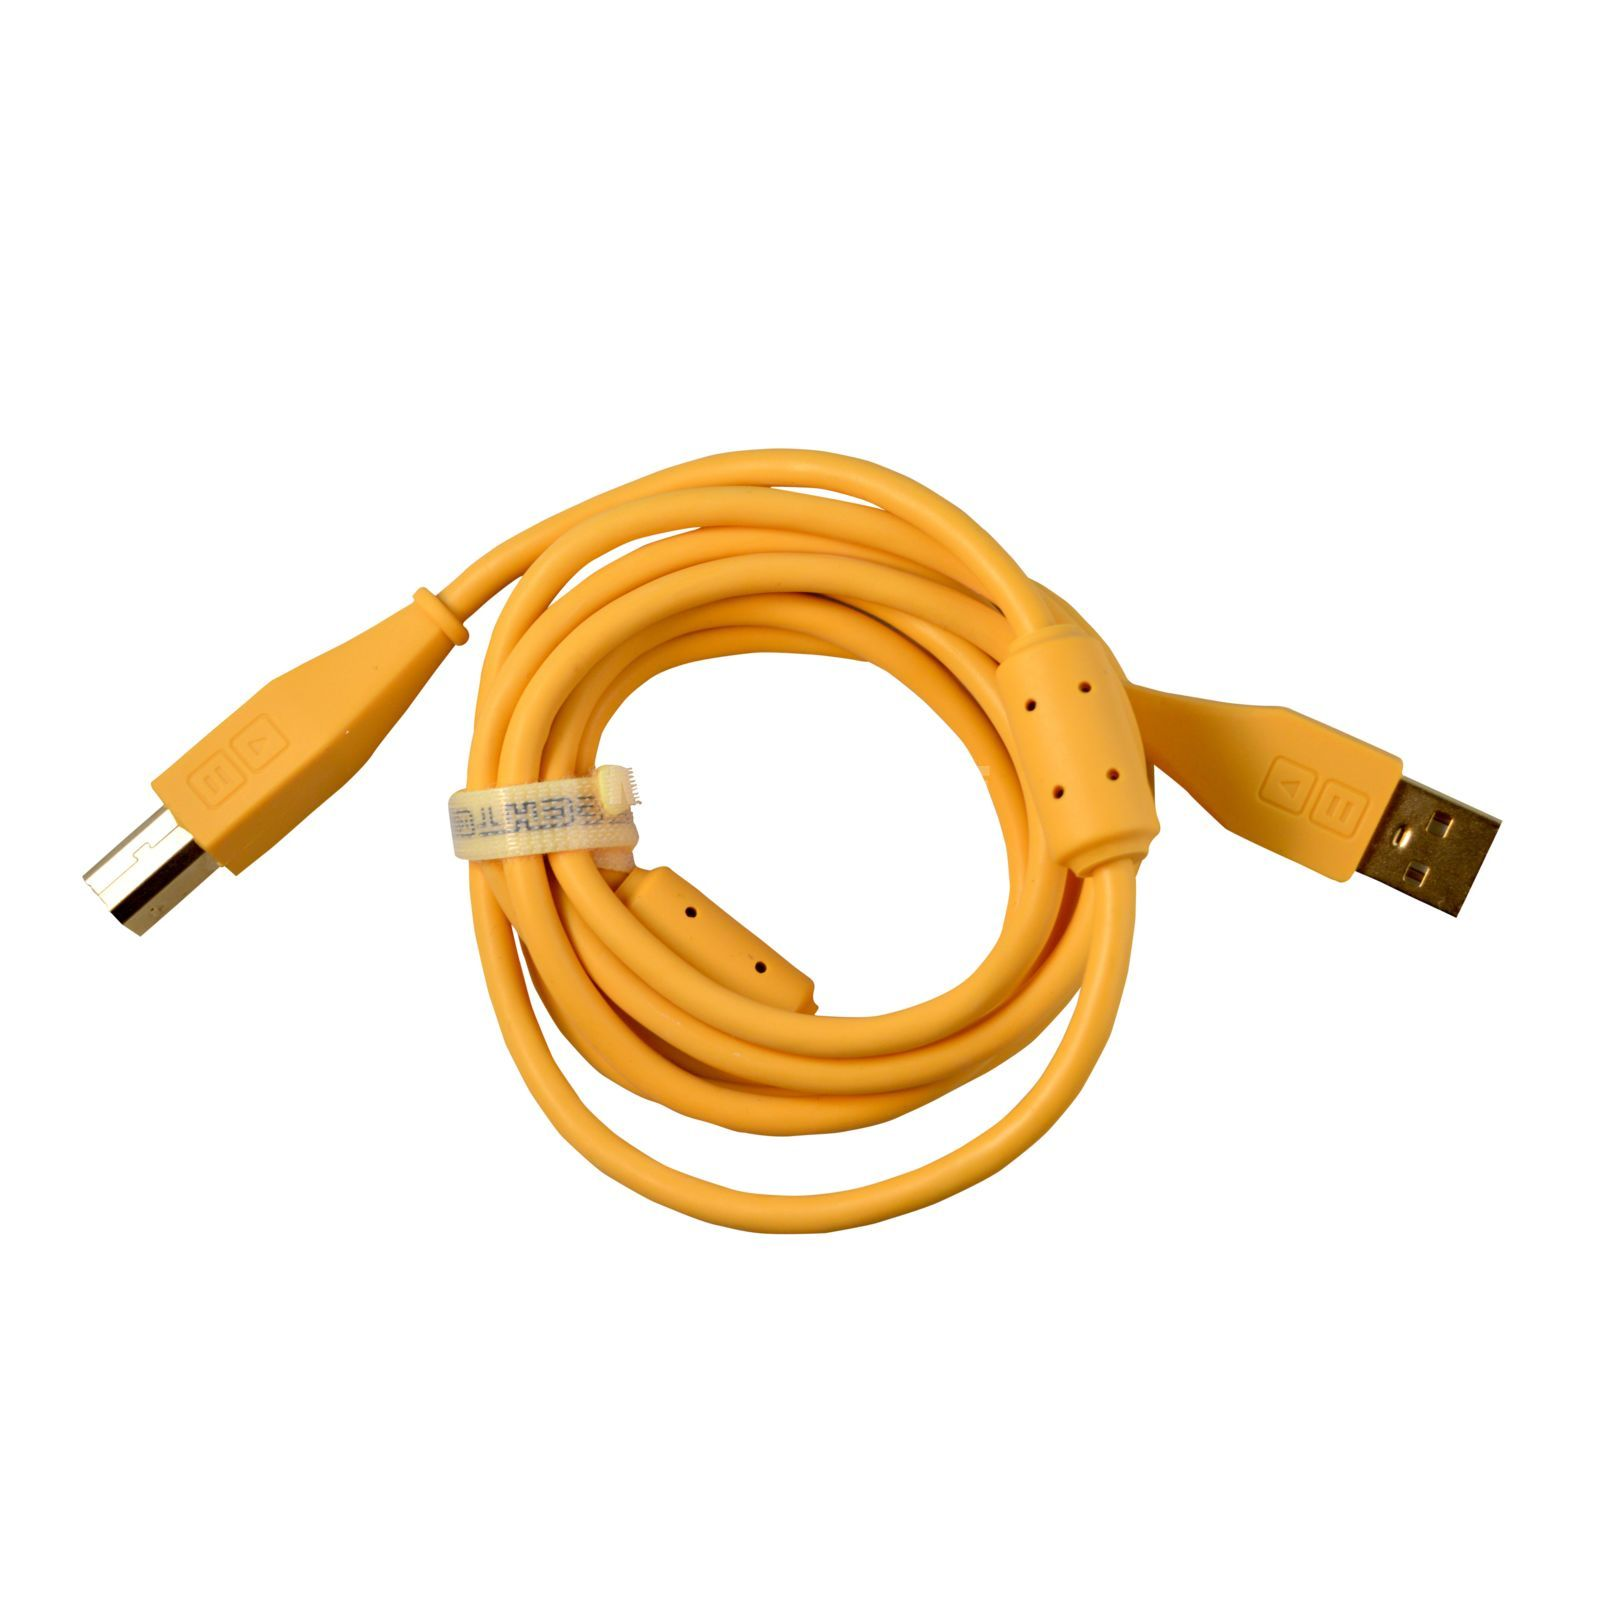 DJ TECHTOOLS DJTT USB Chroma Cable Orange 1,5m, gerader Stecker Produktbild